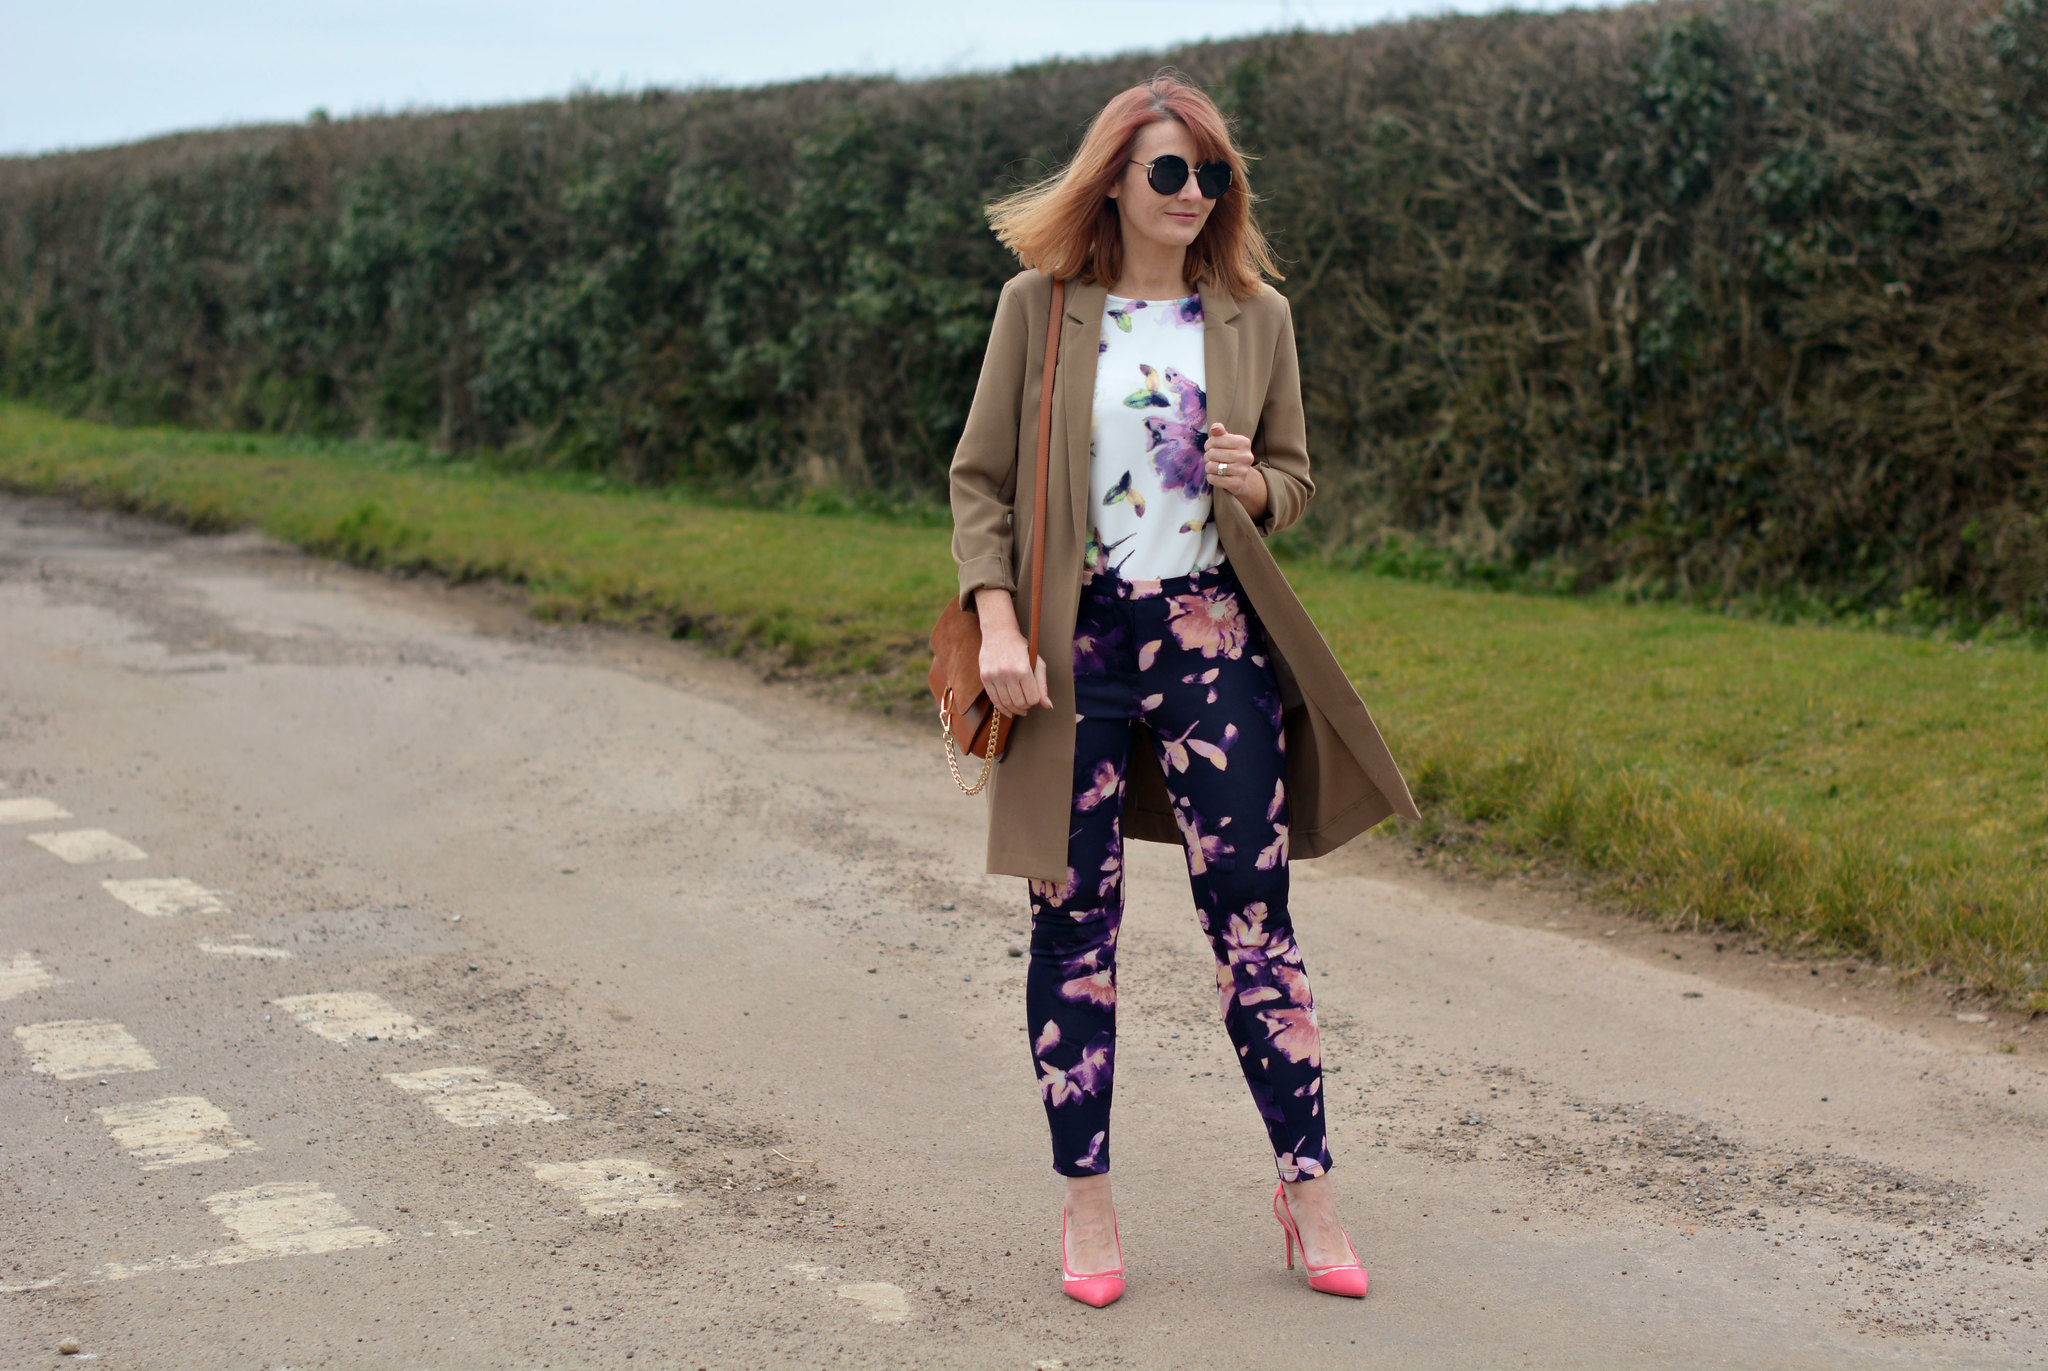 Springtime pattern mixed florals with longline blazer | Not Dressed As Lamb